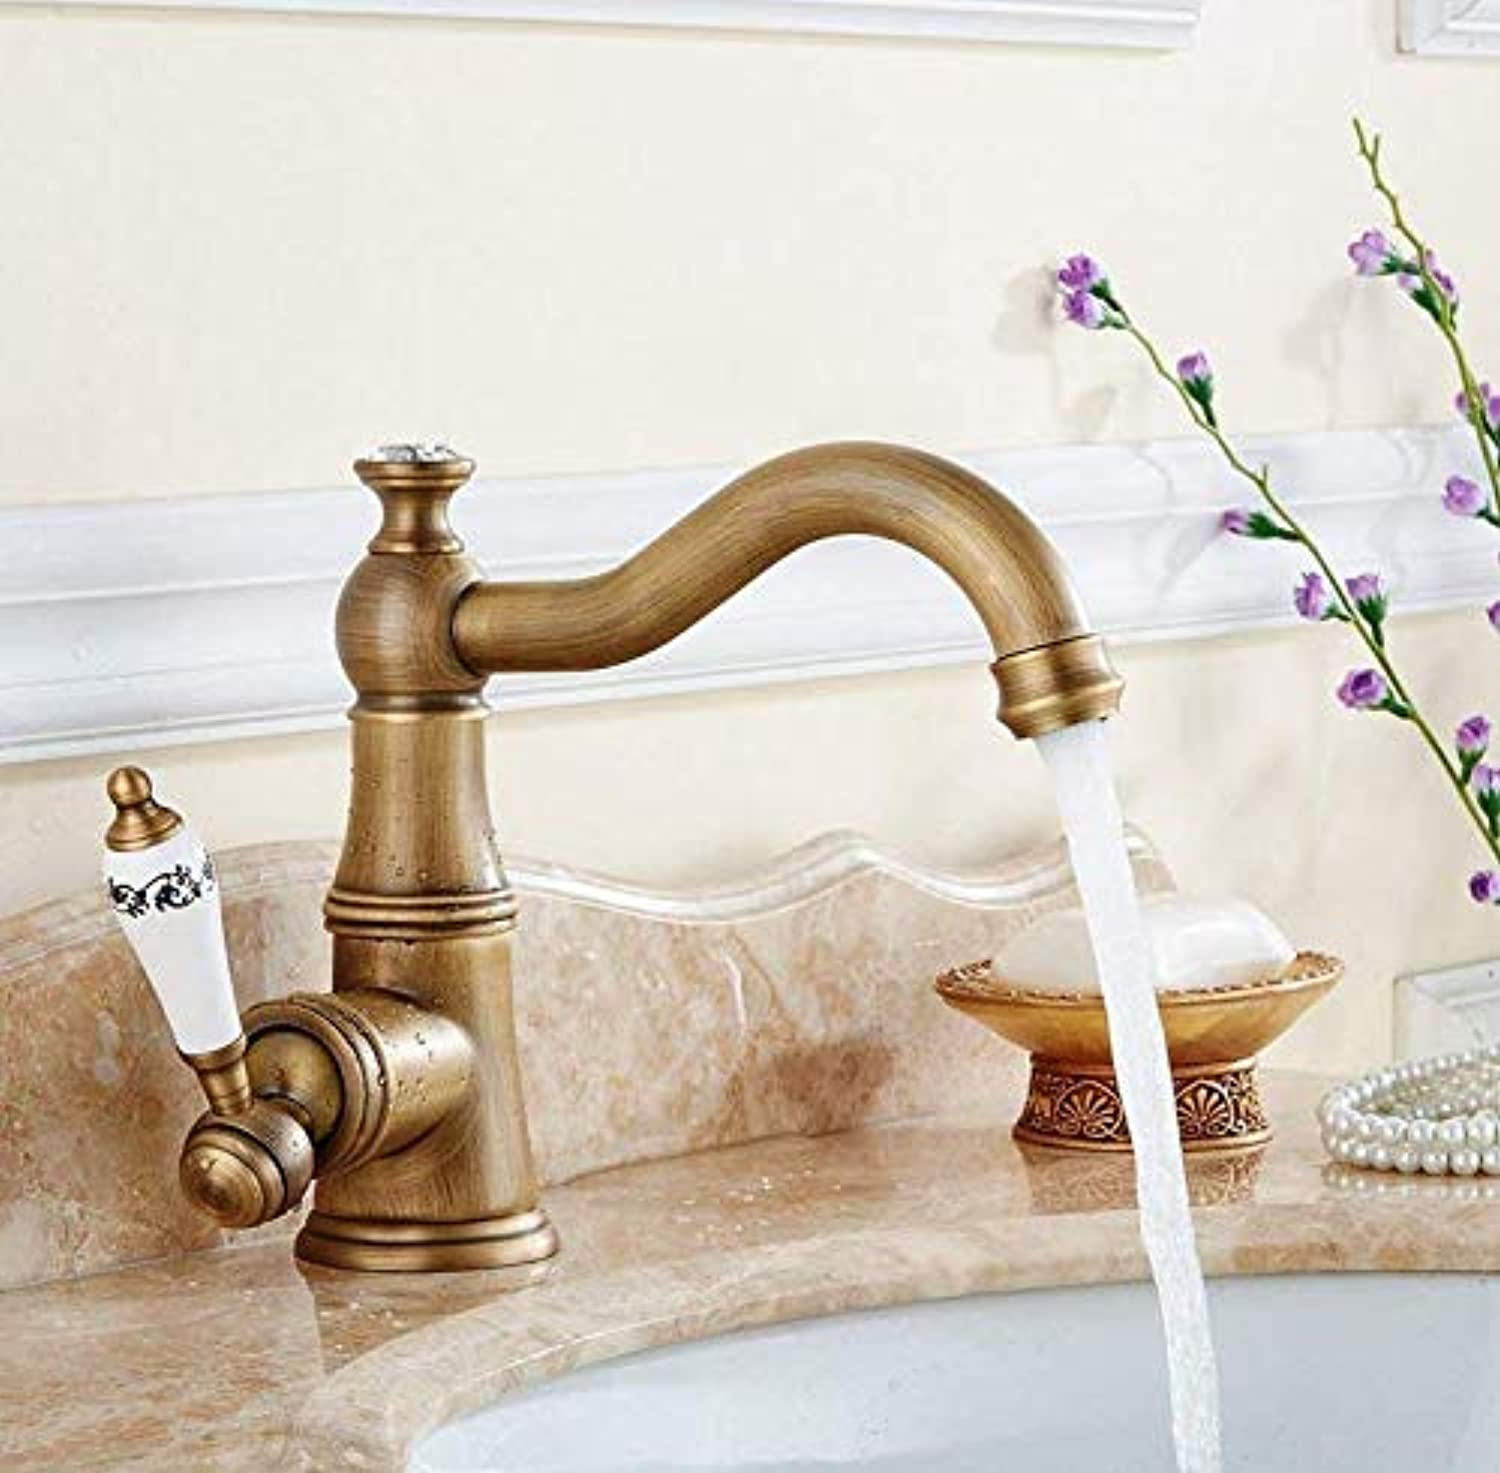 Kitchen Fauct Kitchen Tap Solid Brass Bathroom Kitchen Sink Basin Mixer Tap Hot and Cold Faucet Mixer Taps 360 Degree redation Sink Faucet (color   -, Size   -)